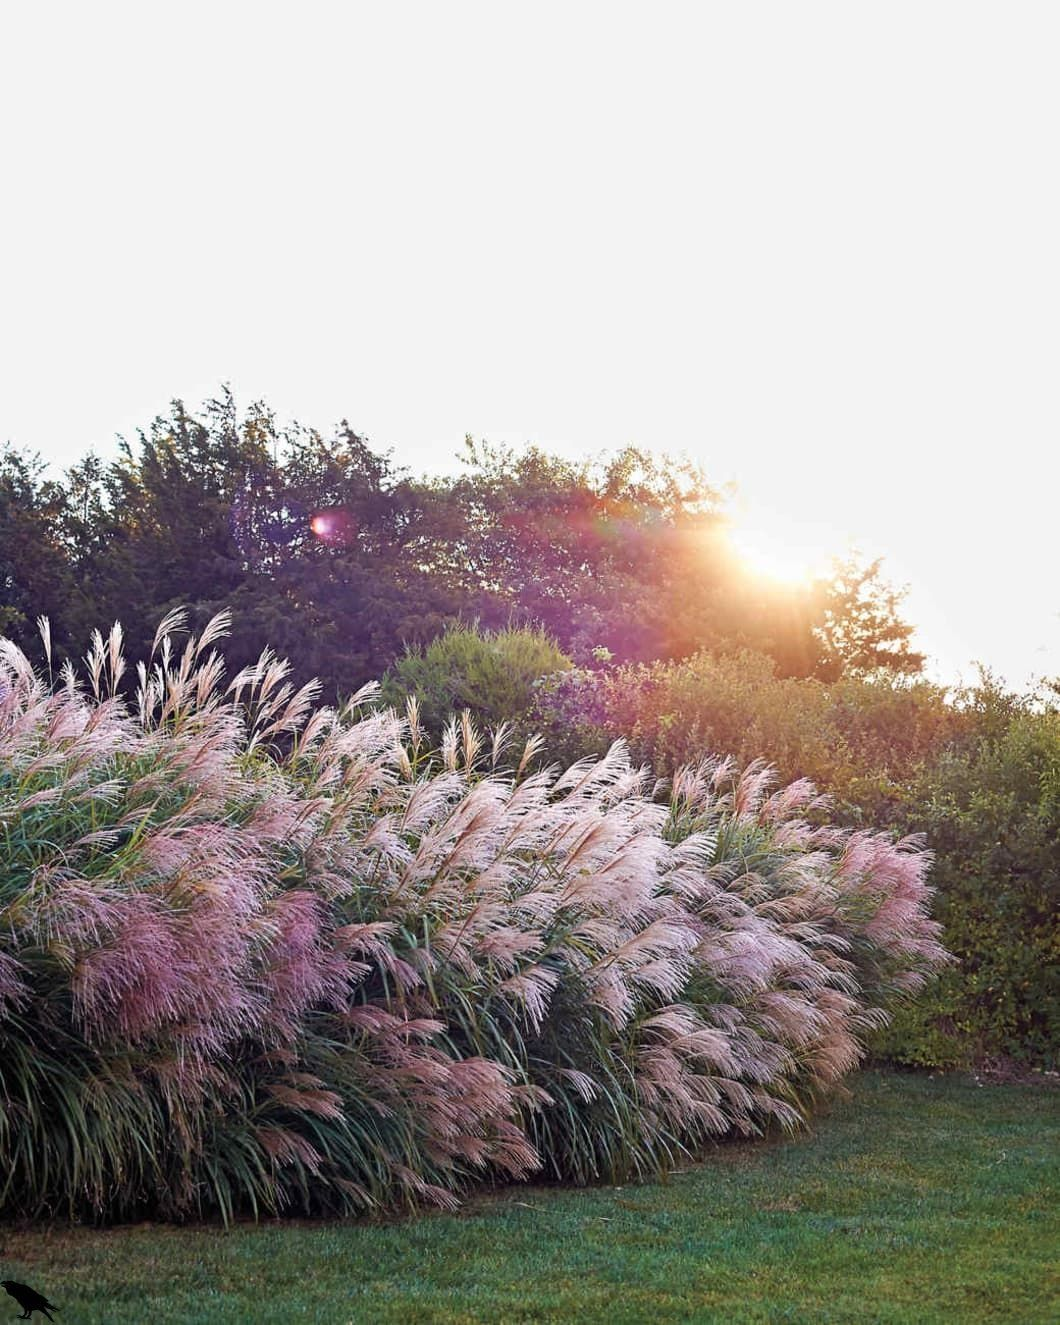 Ornamental Grass Is A Low Maintenance Drought Resistant Plant Wonder There Are Plenty Of Re In 2020 Drought Resistant Plants Ornamental Grasses Low Maintenance Garden